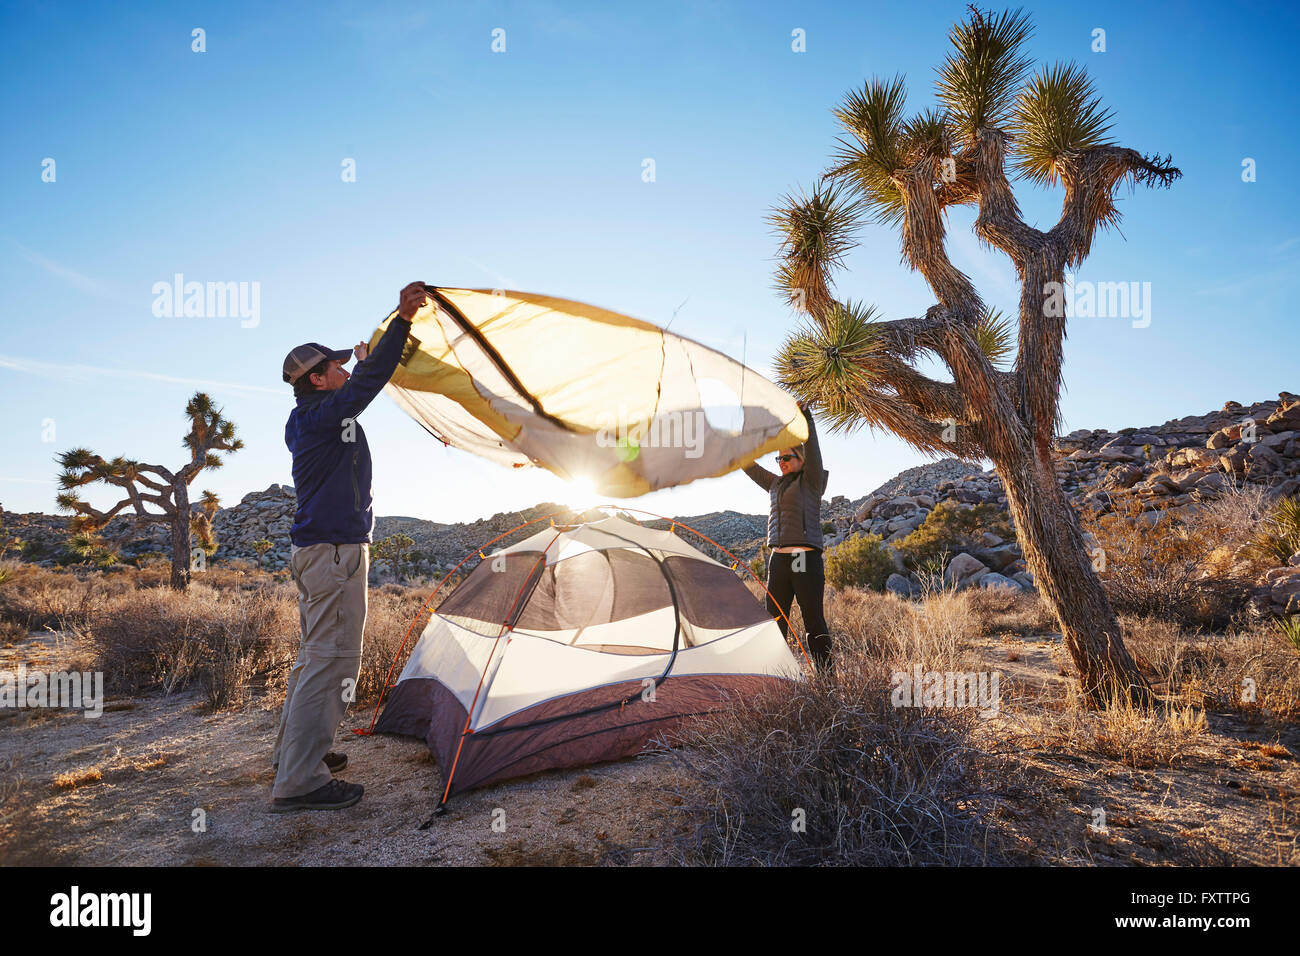 Campers assembling tent, Joshua Tree National Park, California - Stock Image